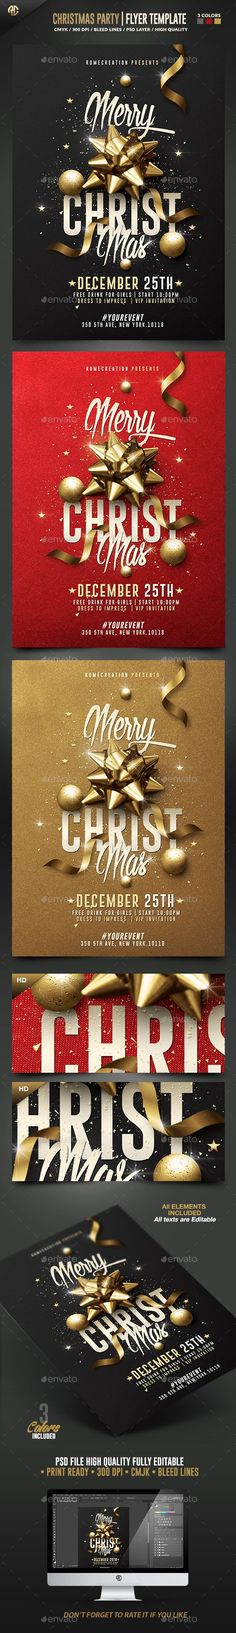 Classy Christmas Party | Psd Flyer Template